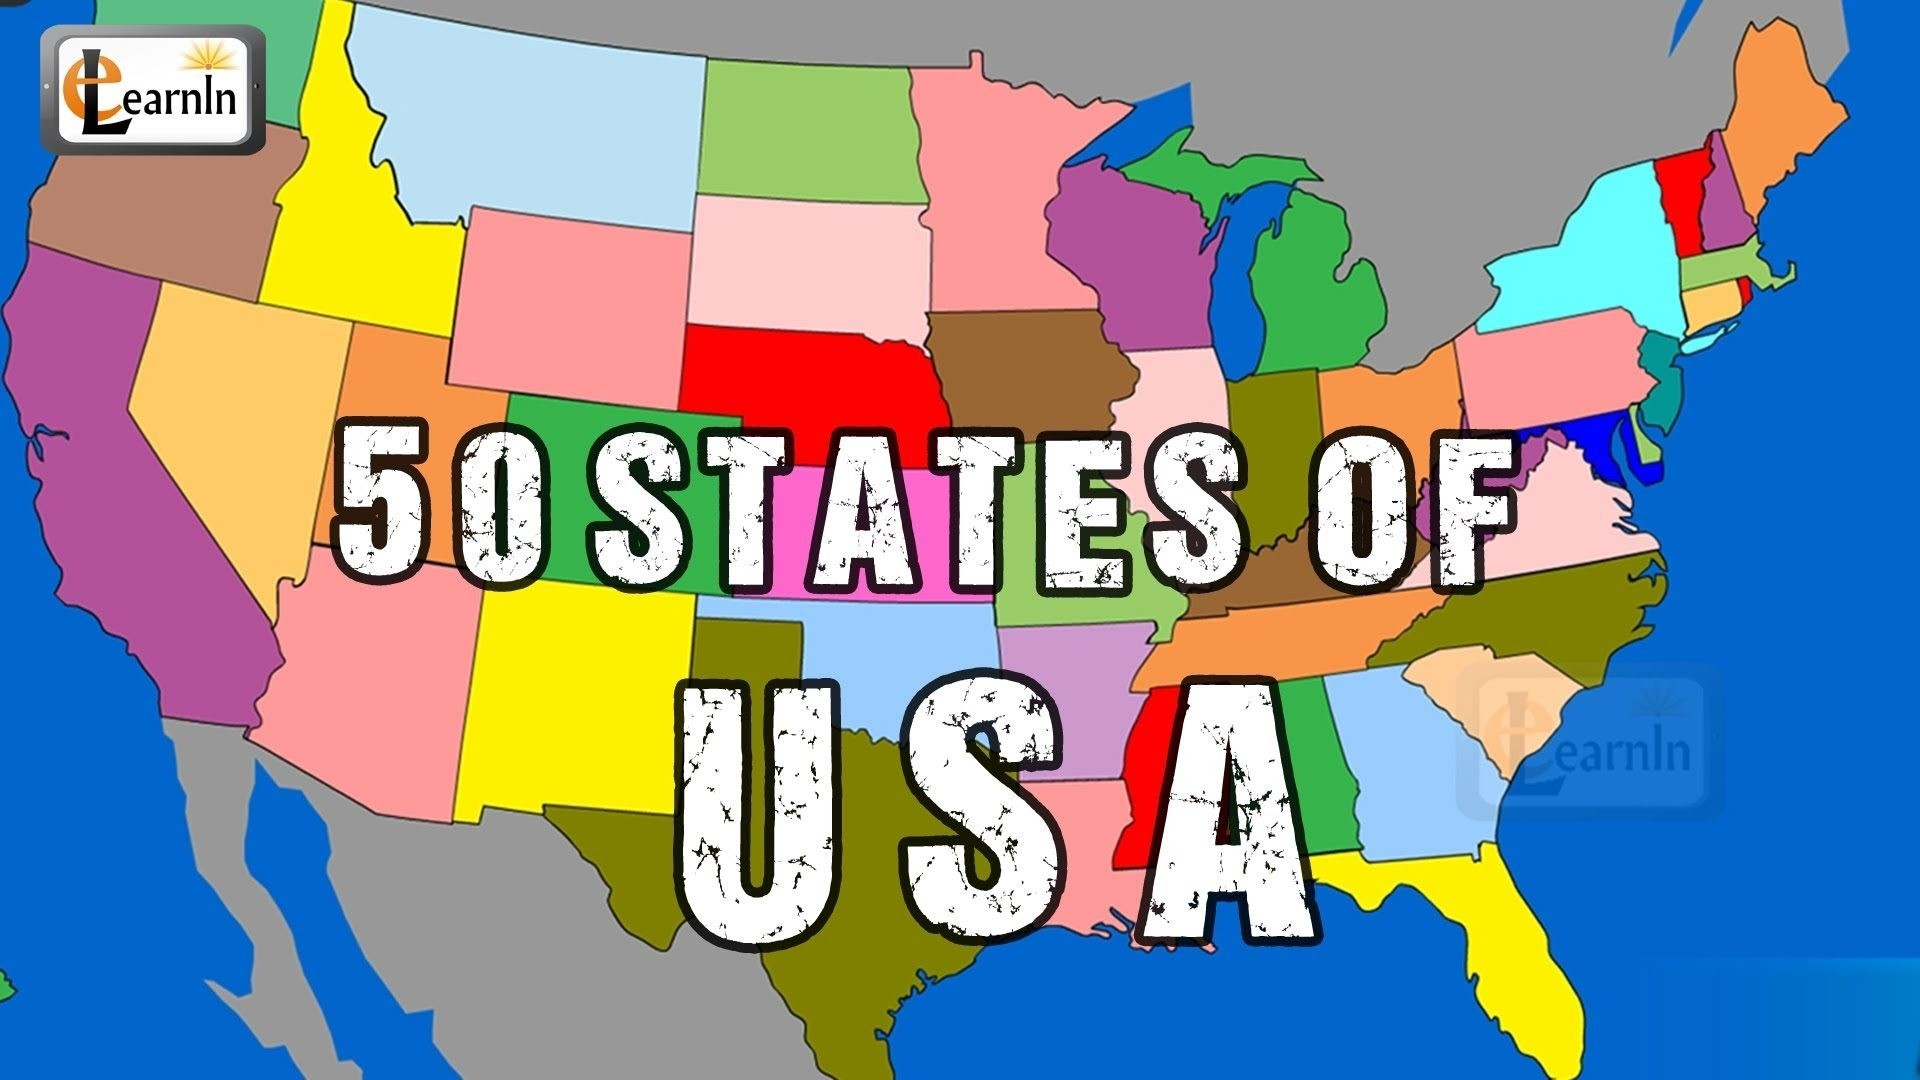 an introduction to asian communities in the united states of america An˜introduction united states  presumably allow indian communities to enjoy  united states of america.